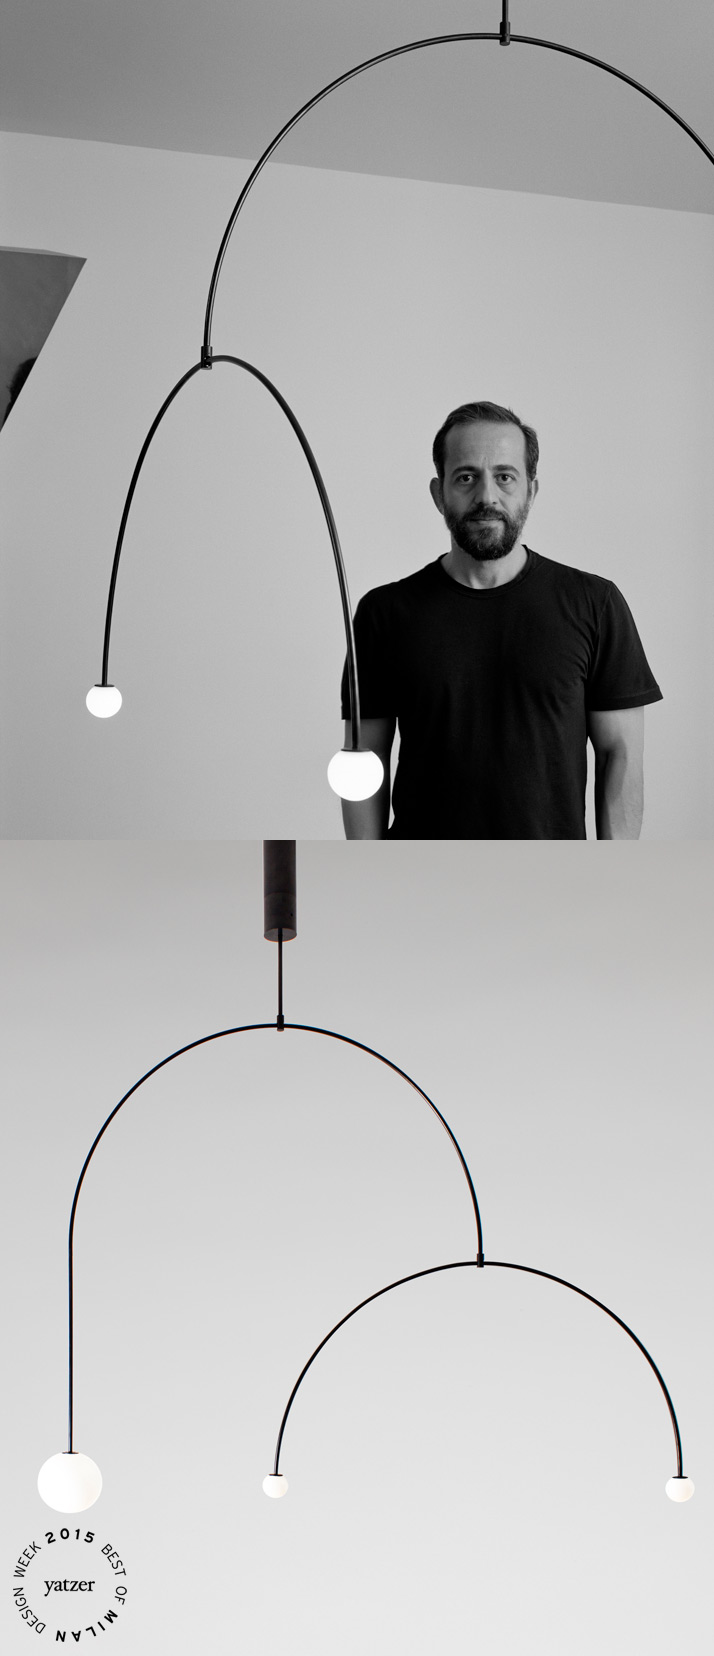 Mobile Chandelier 9 is one of the 15 new lighting designs that Michael Anastassiades launched in Milan this year, extending the collection of minimal mobile chandeliers and spherical lamps produced by his own brand.Photographs by Hélène Binet.